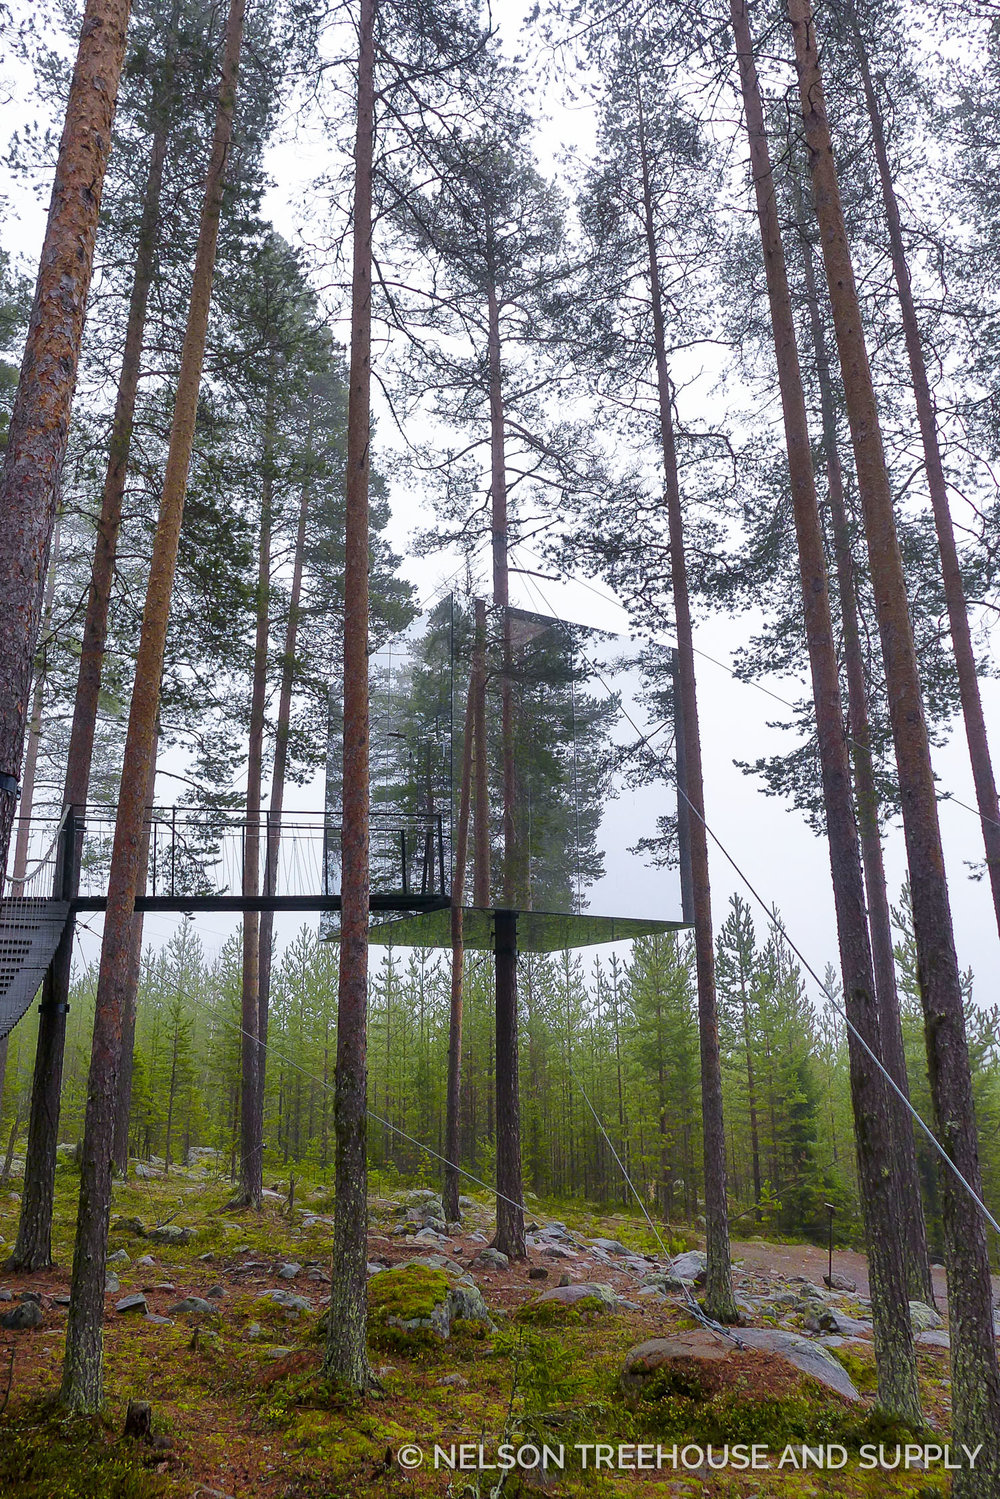 Pete really admired the architectural creativity at Treehotel in Sweden.